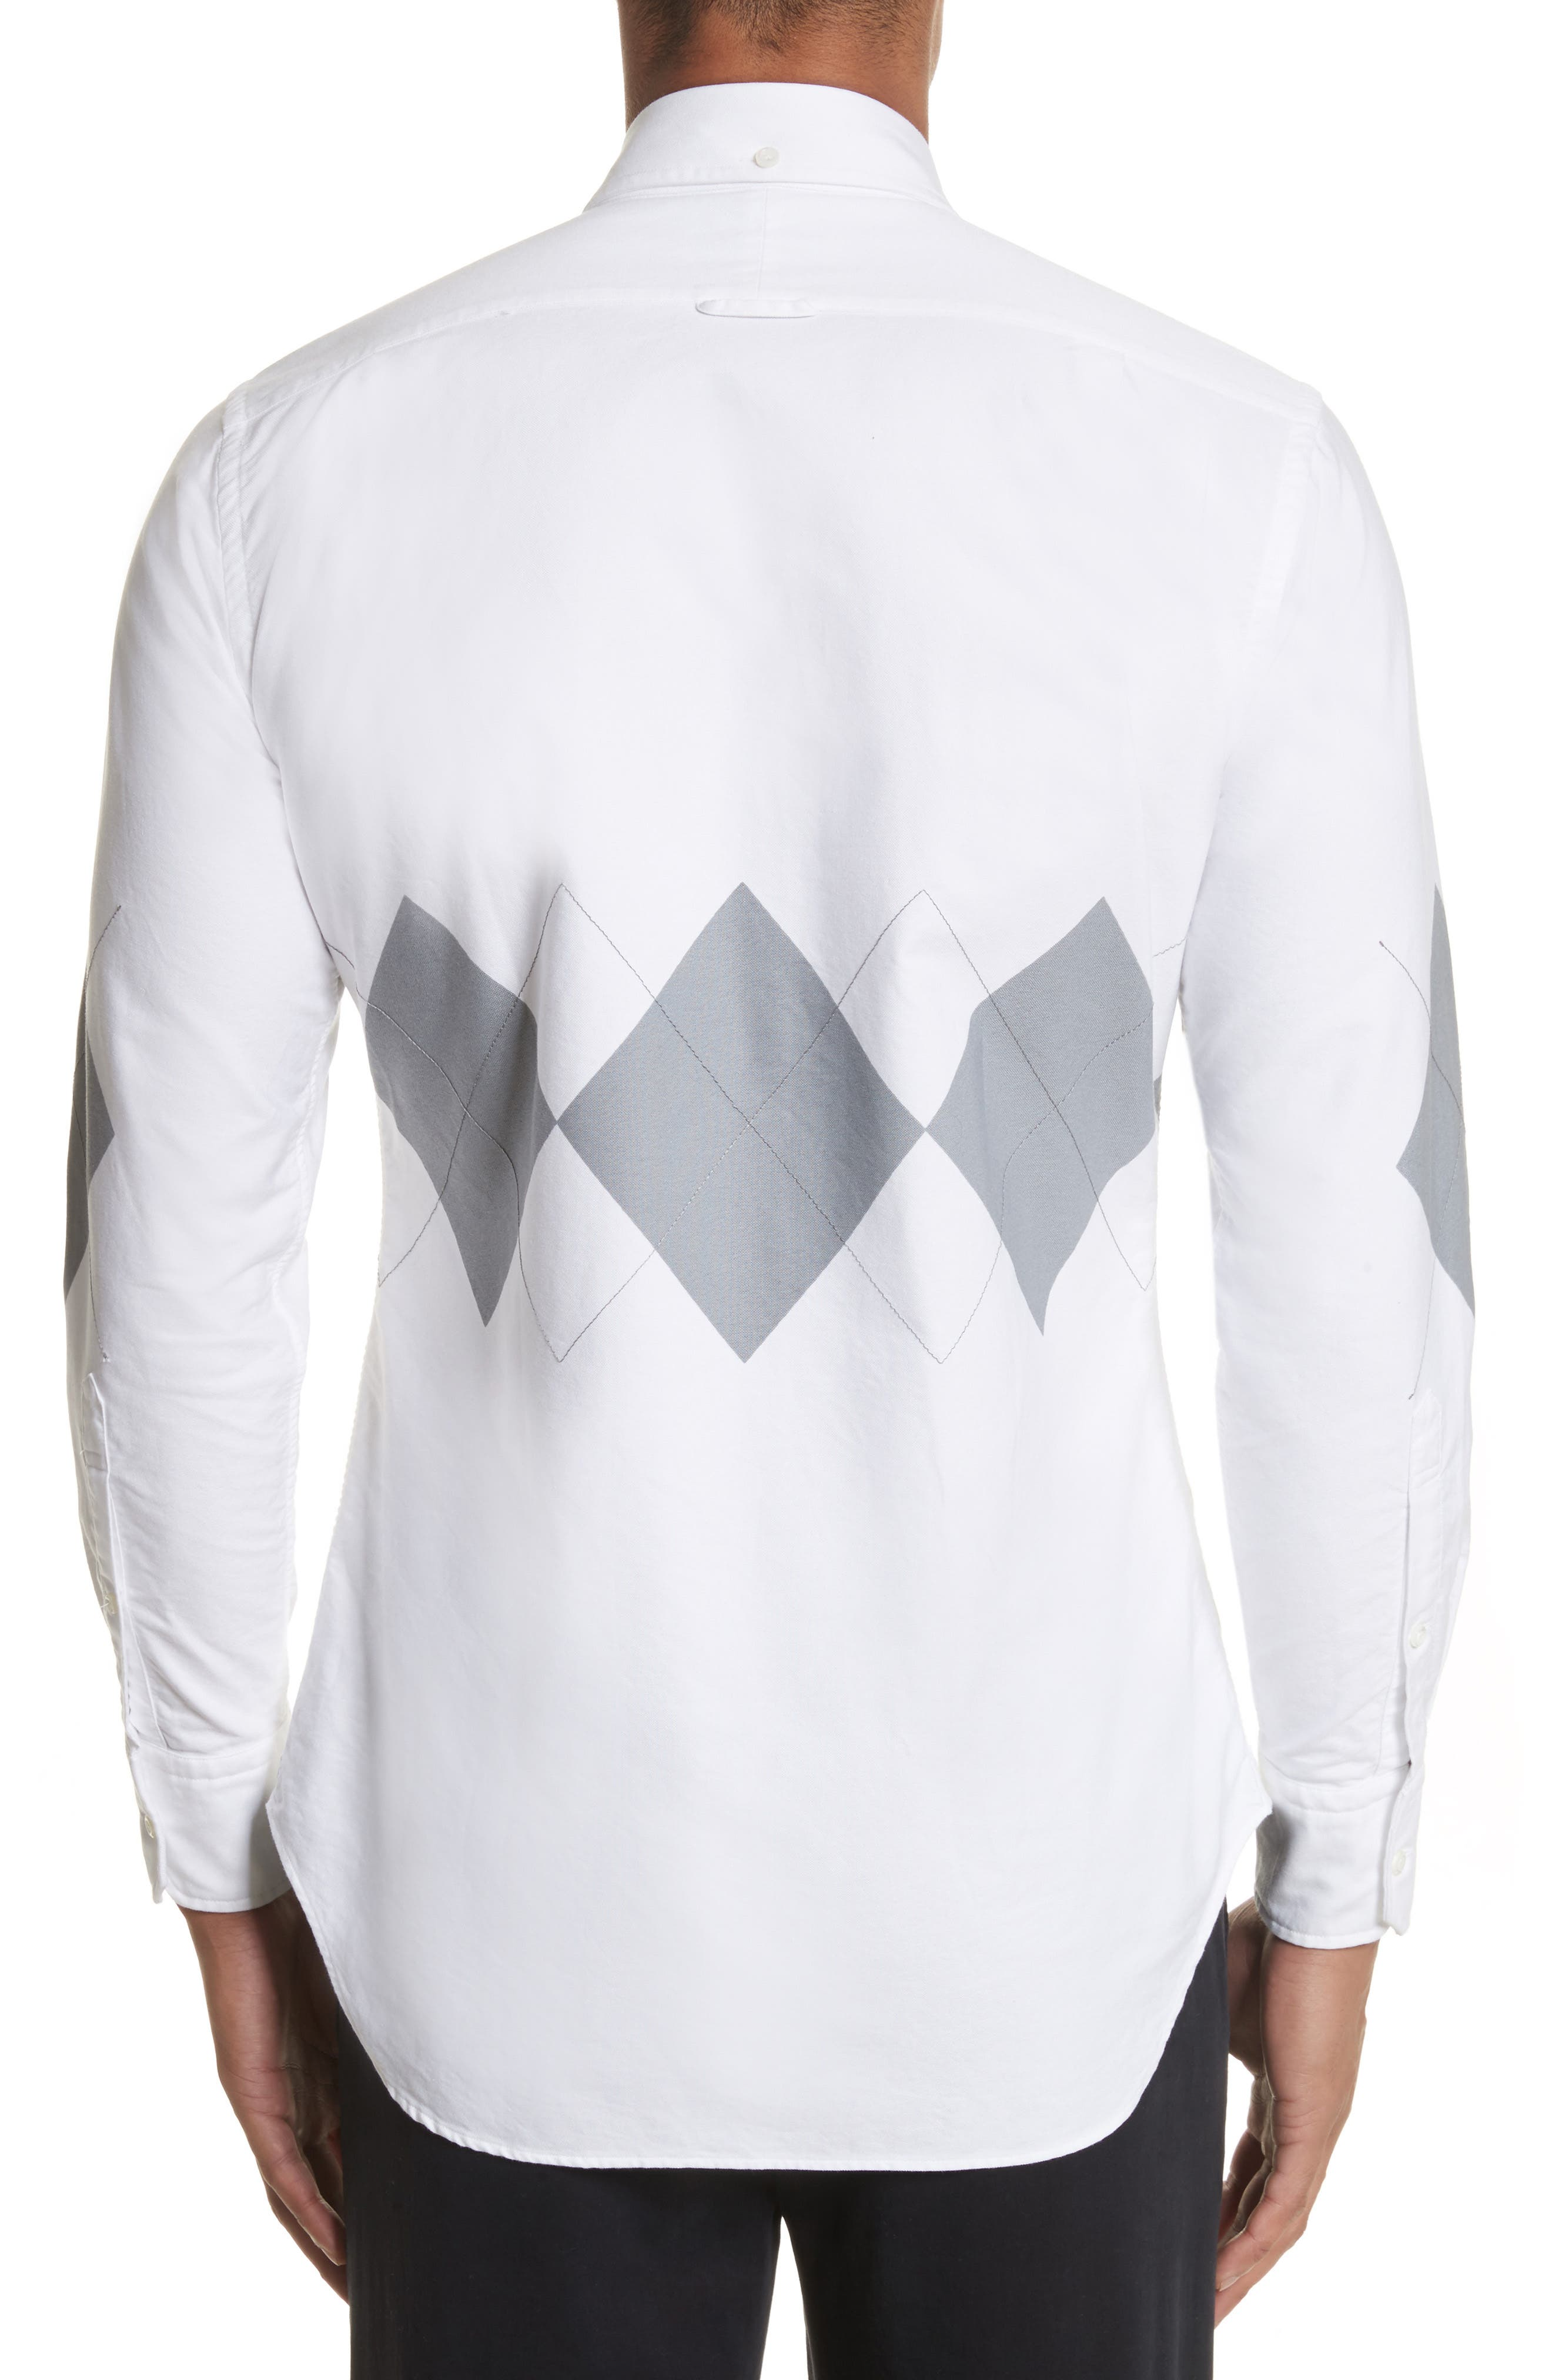 Argyle Print Woven Shirt,                             Alternate thumbnail 2, color,                             White